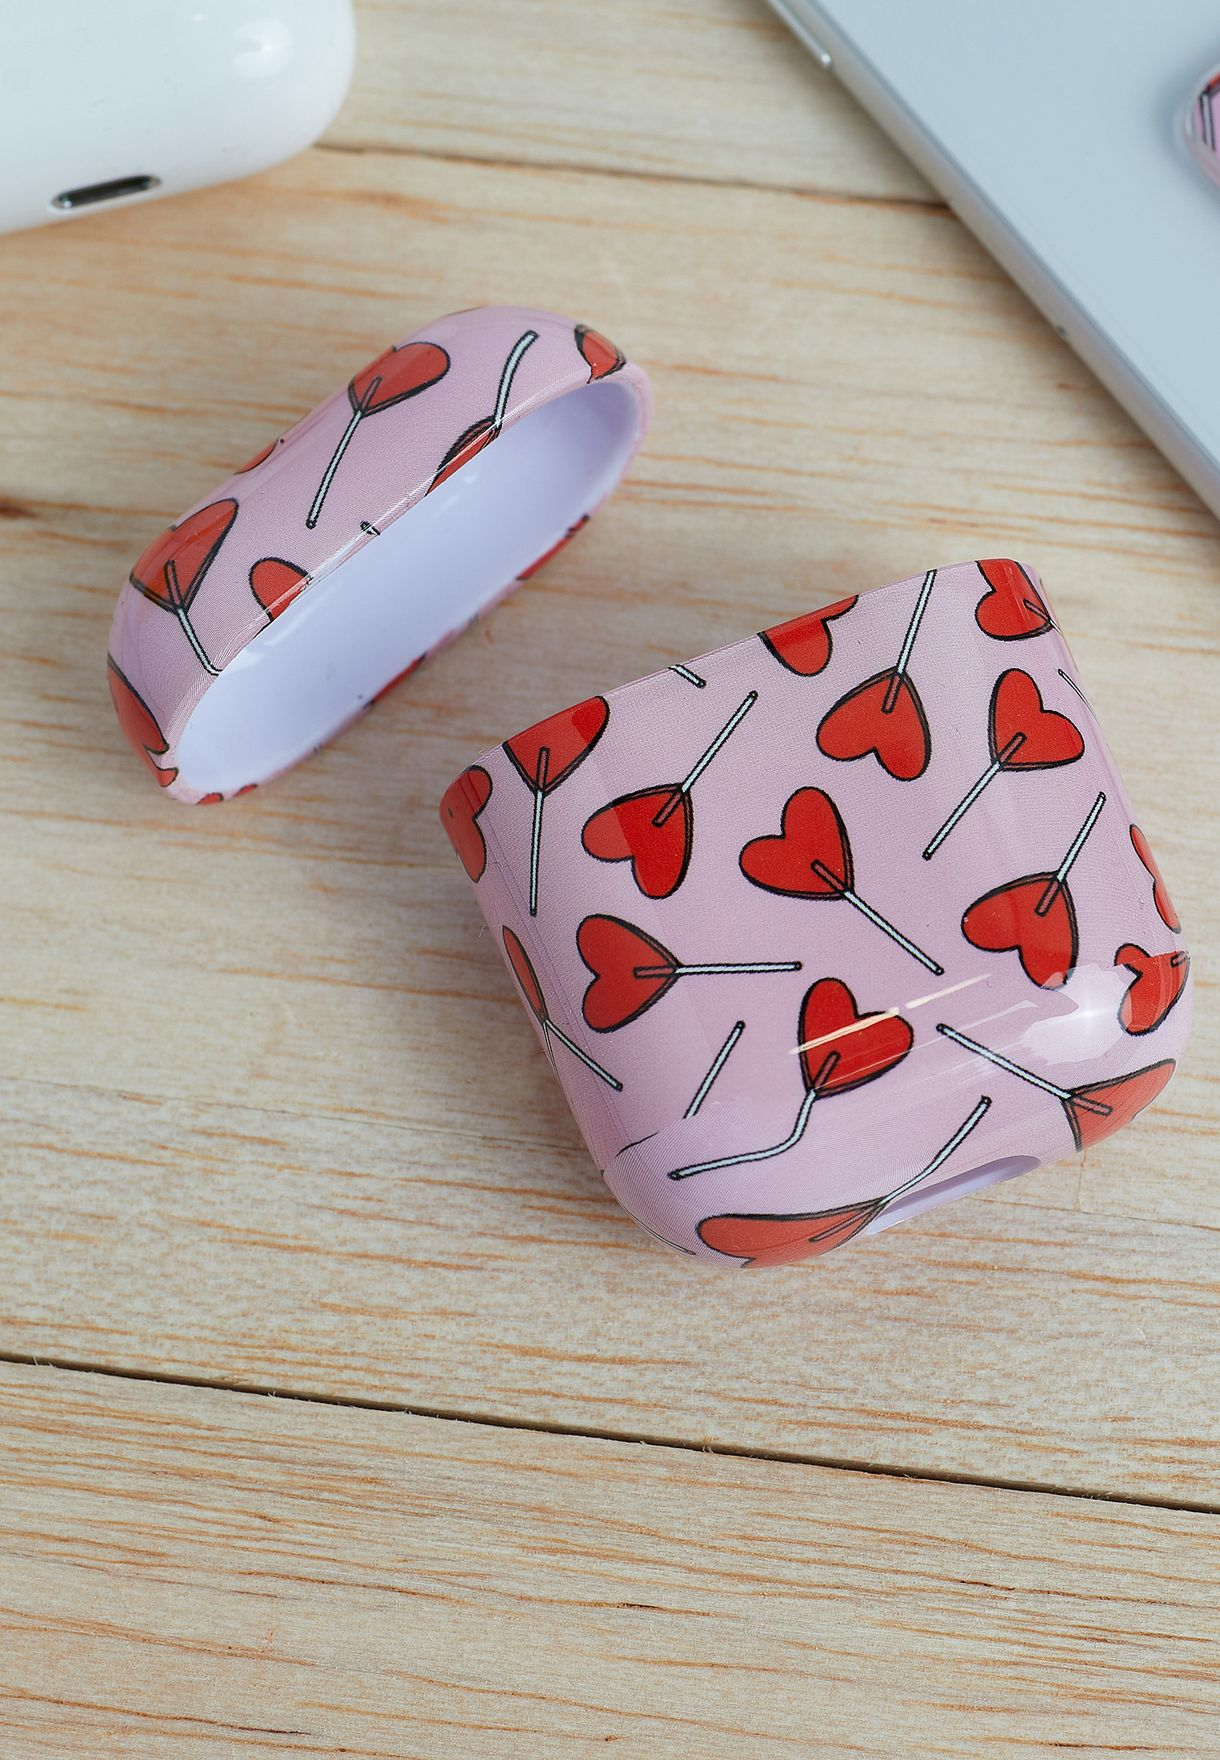 Candy Hearts Airpods Case